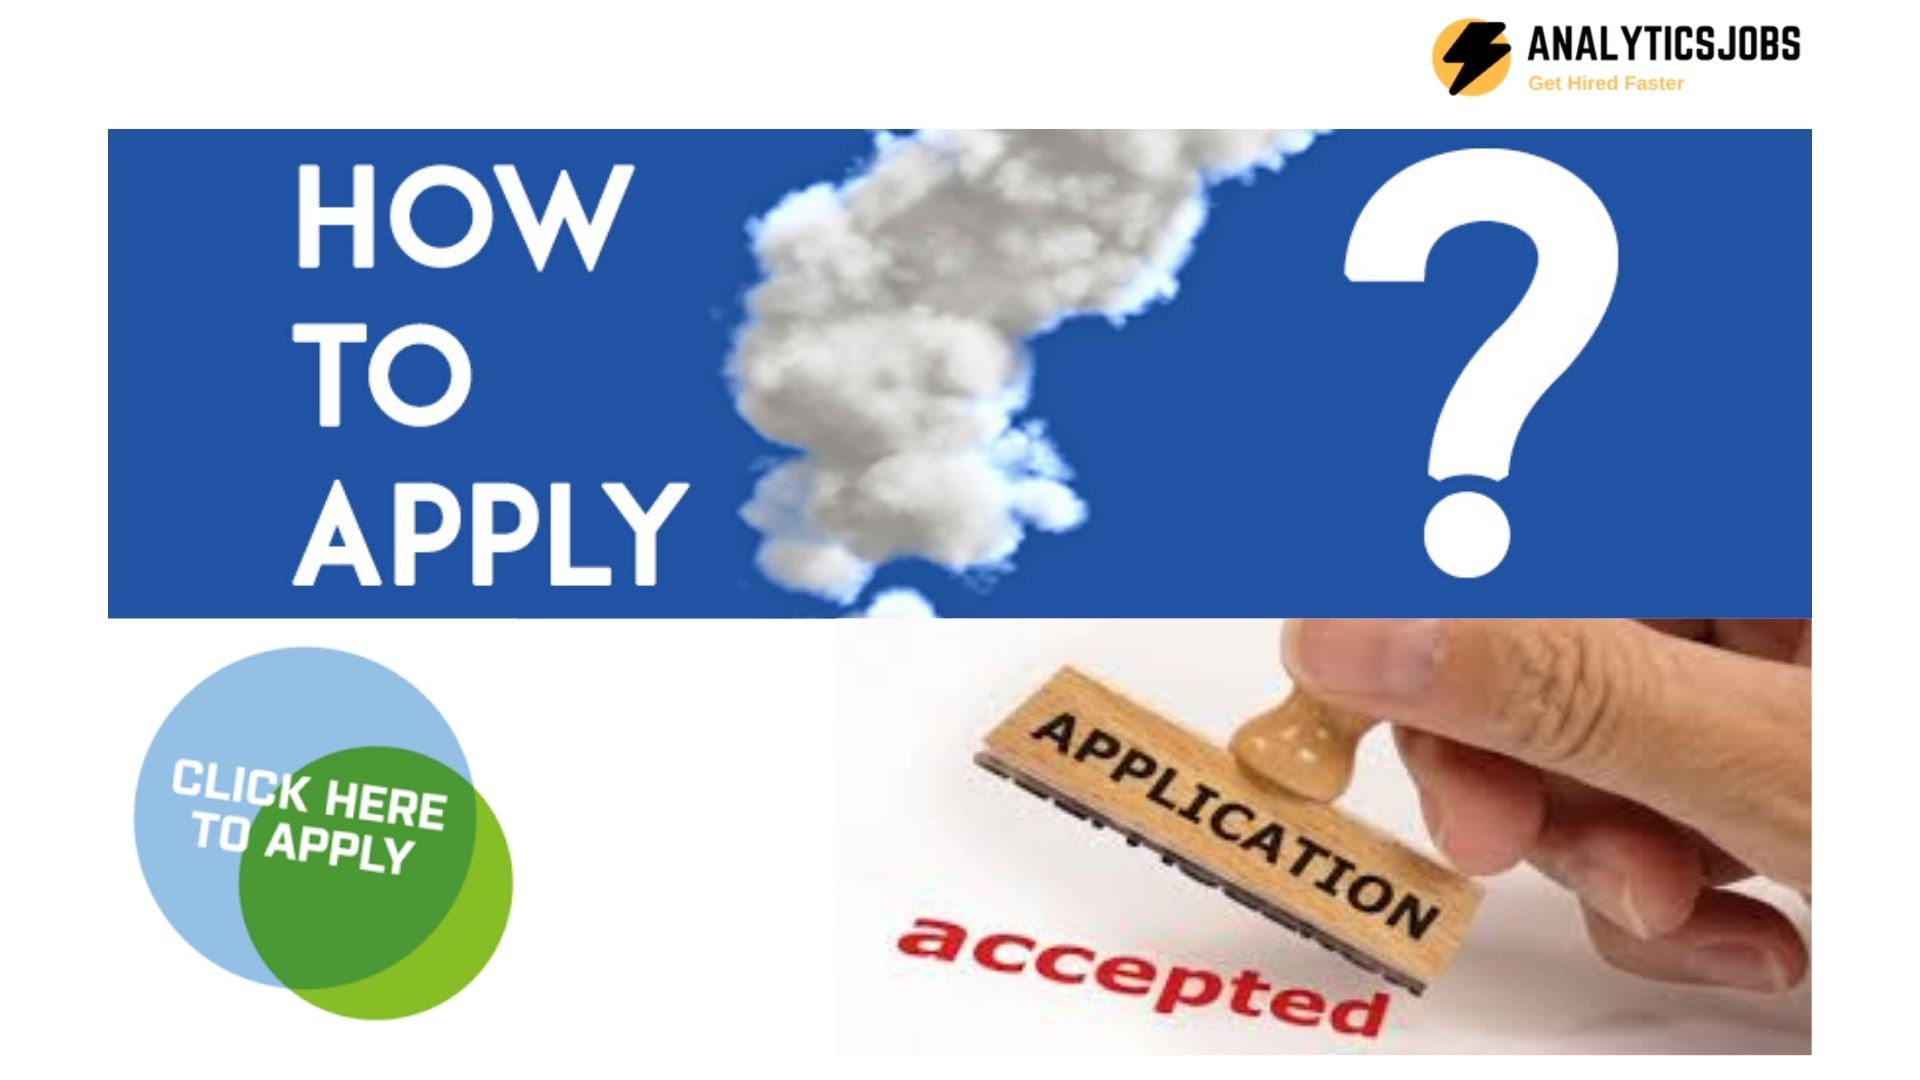 How to apply in Google, KPGM, Accenture and other Multi-National Companies